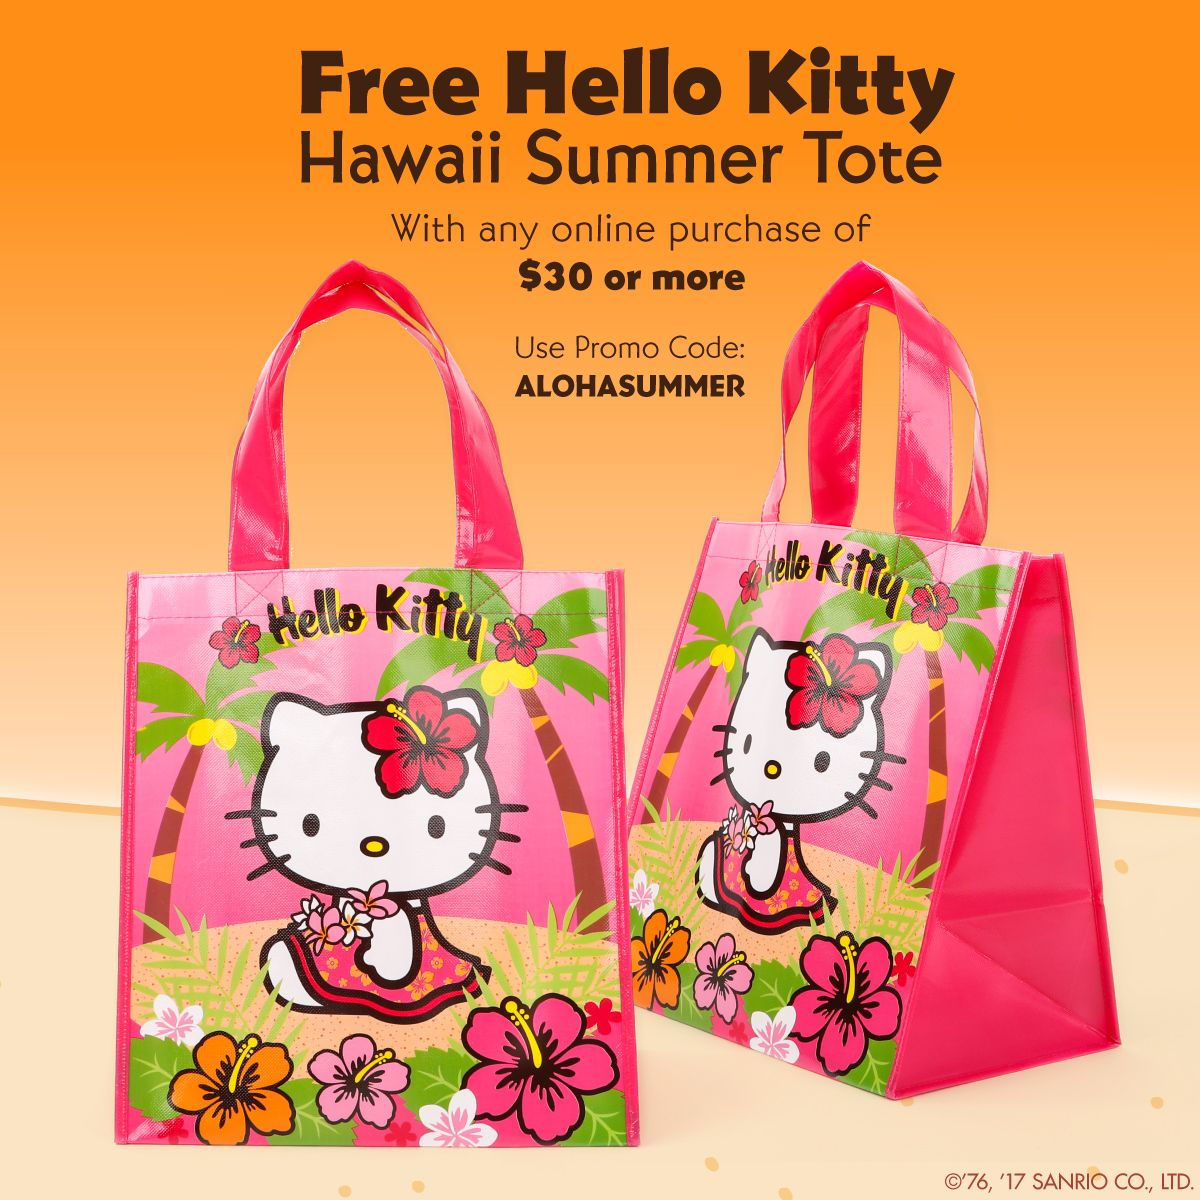 582036e19 Ready for some fun in the sun? Get a free Hello Kitty Hawaii Summer Tote  with any online purchase of $30 or more. Use promo code: ALOHASUMMER